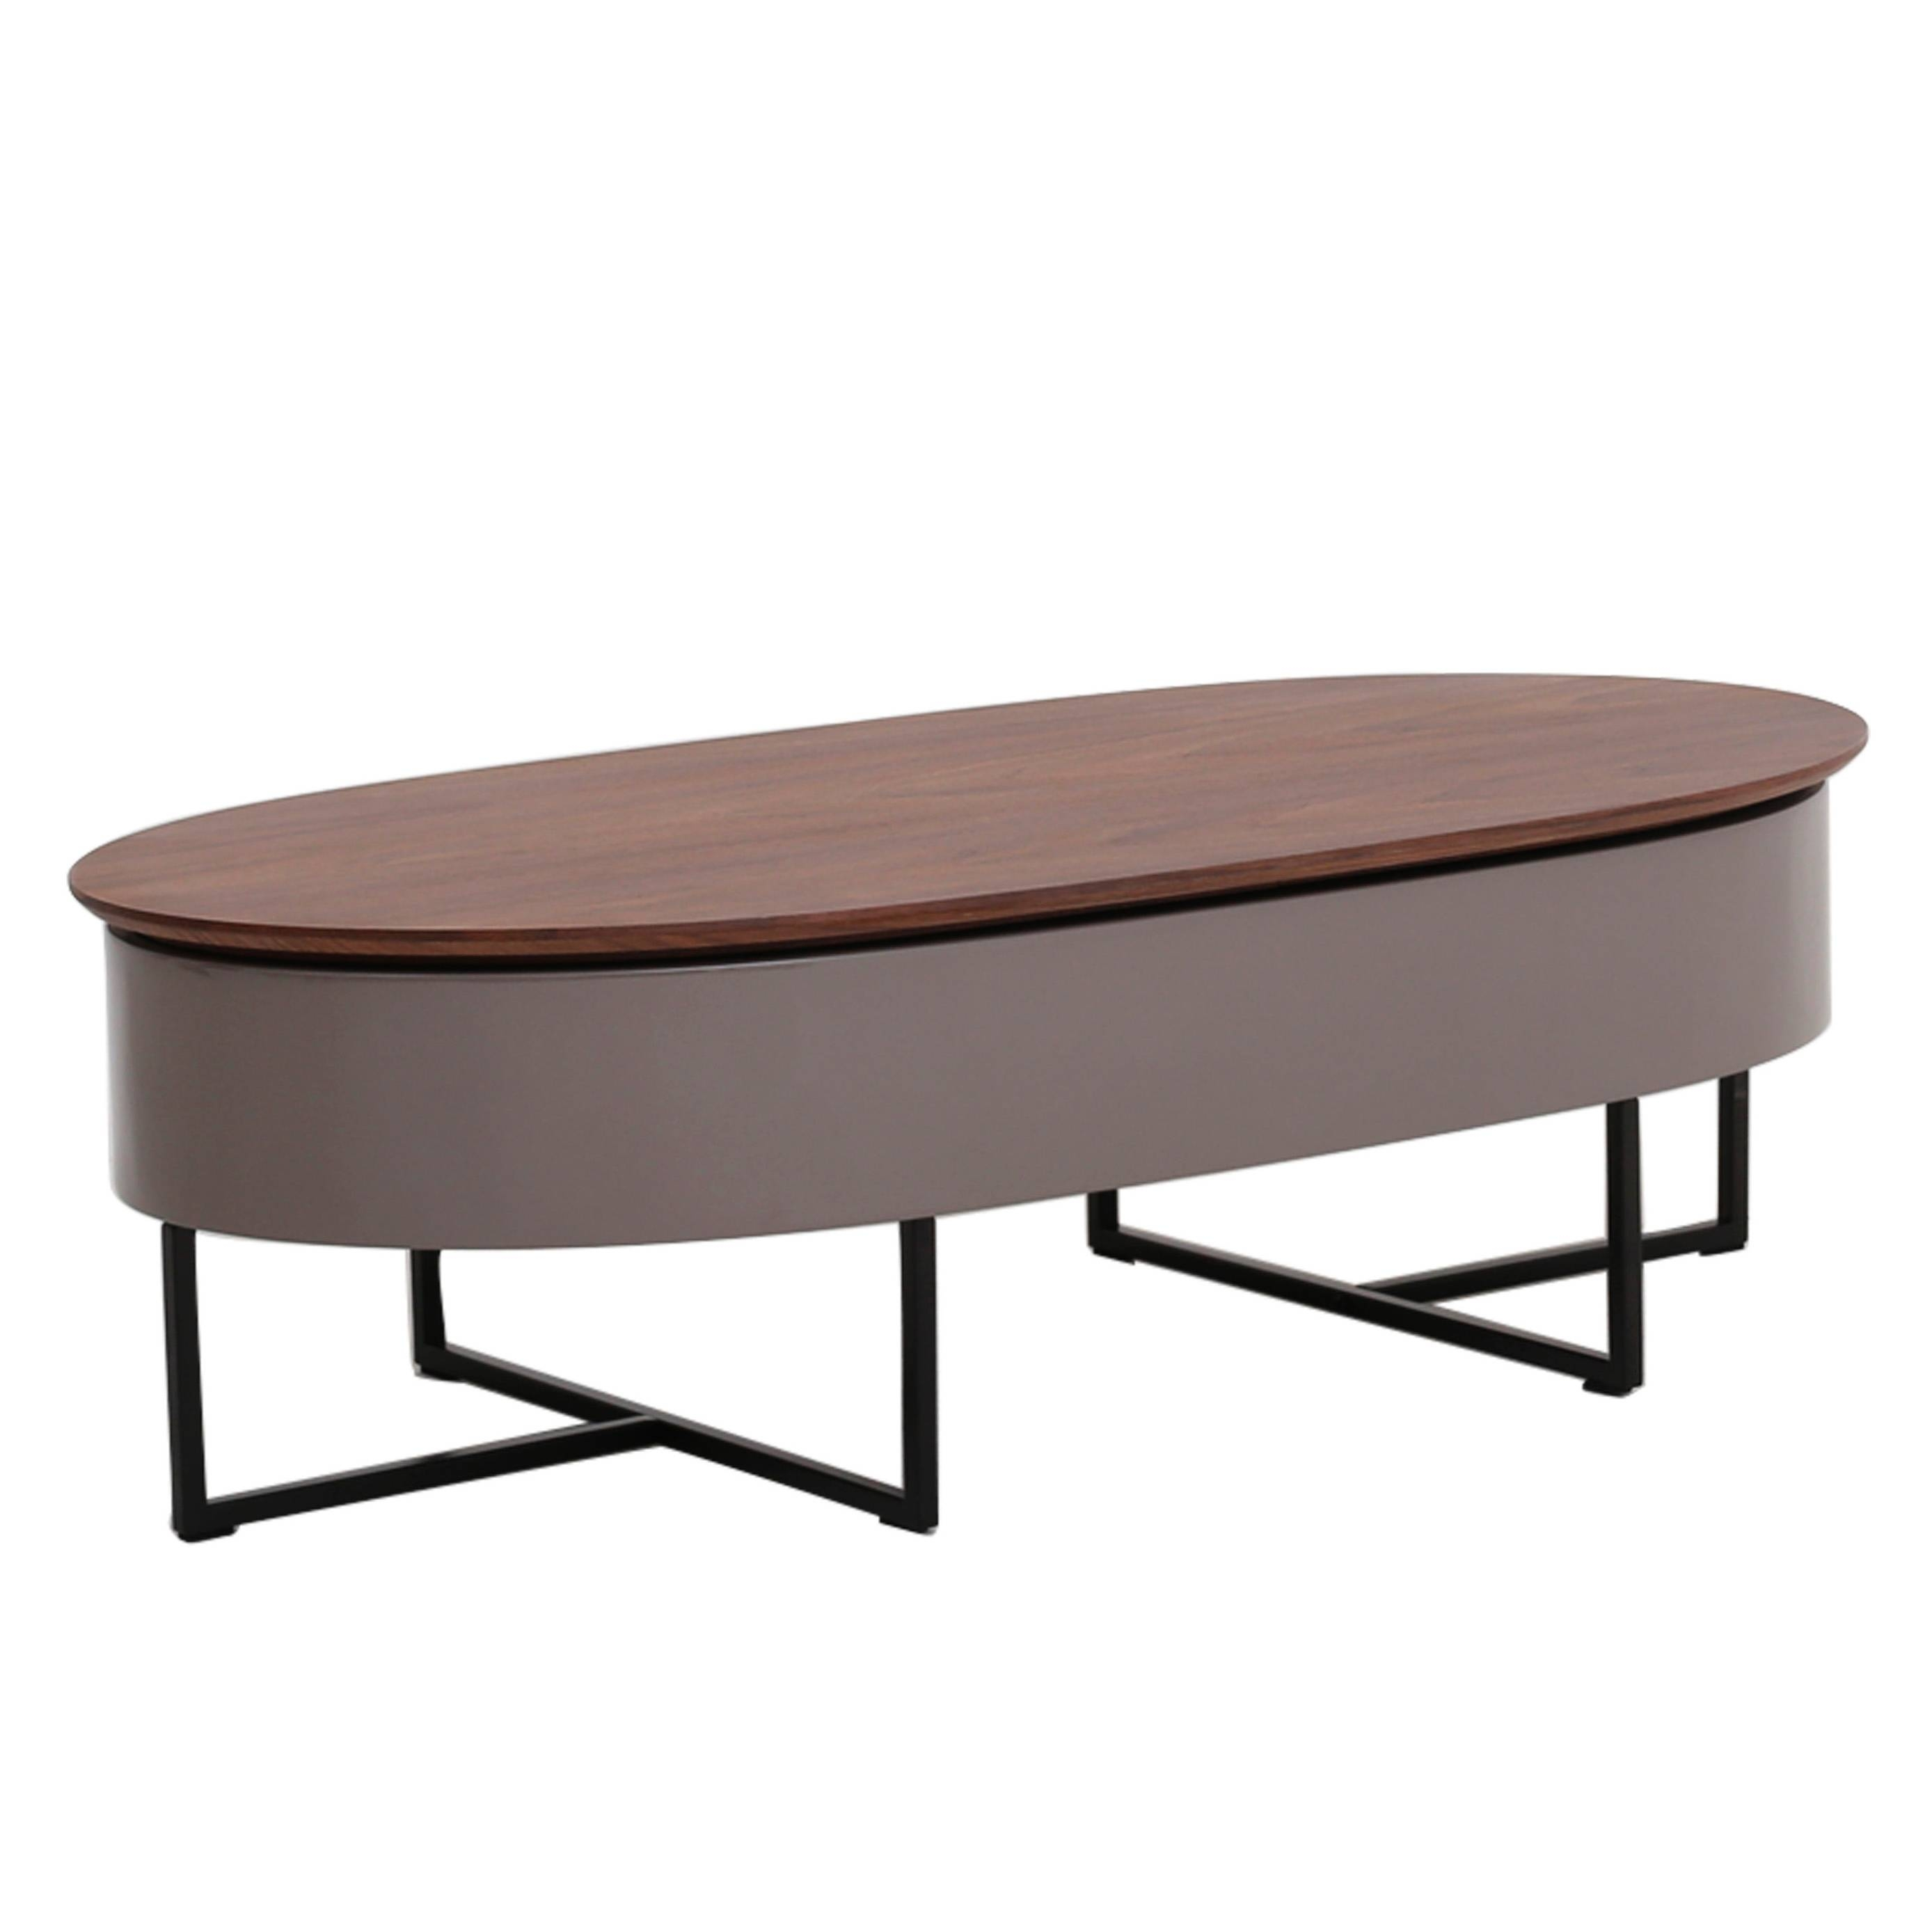 1030001 - Npd - New Pacific Direct Furniture | Stylish throughout Oval Walnut Coffee Tables (Image 1 of 30)